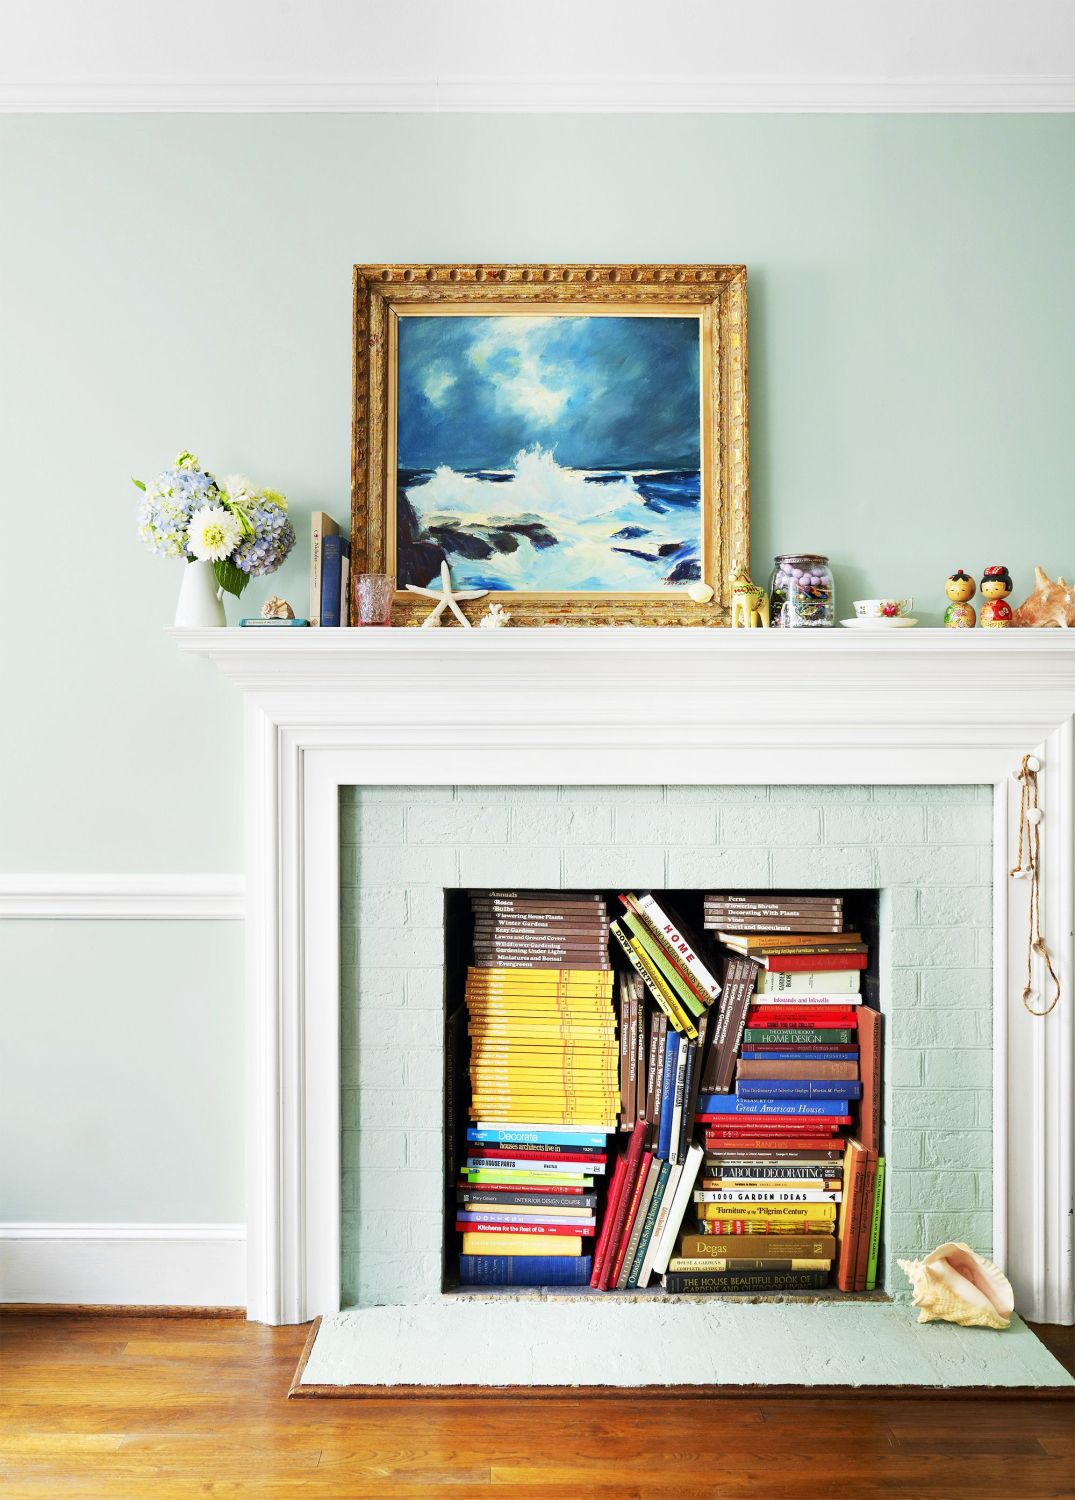 painted-fireplace-with-books-1563986180